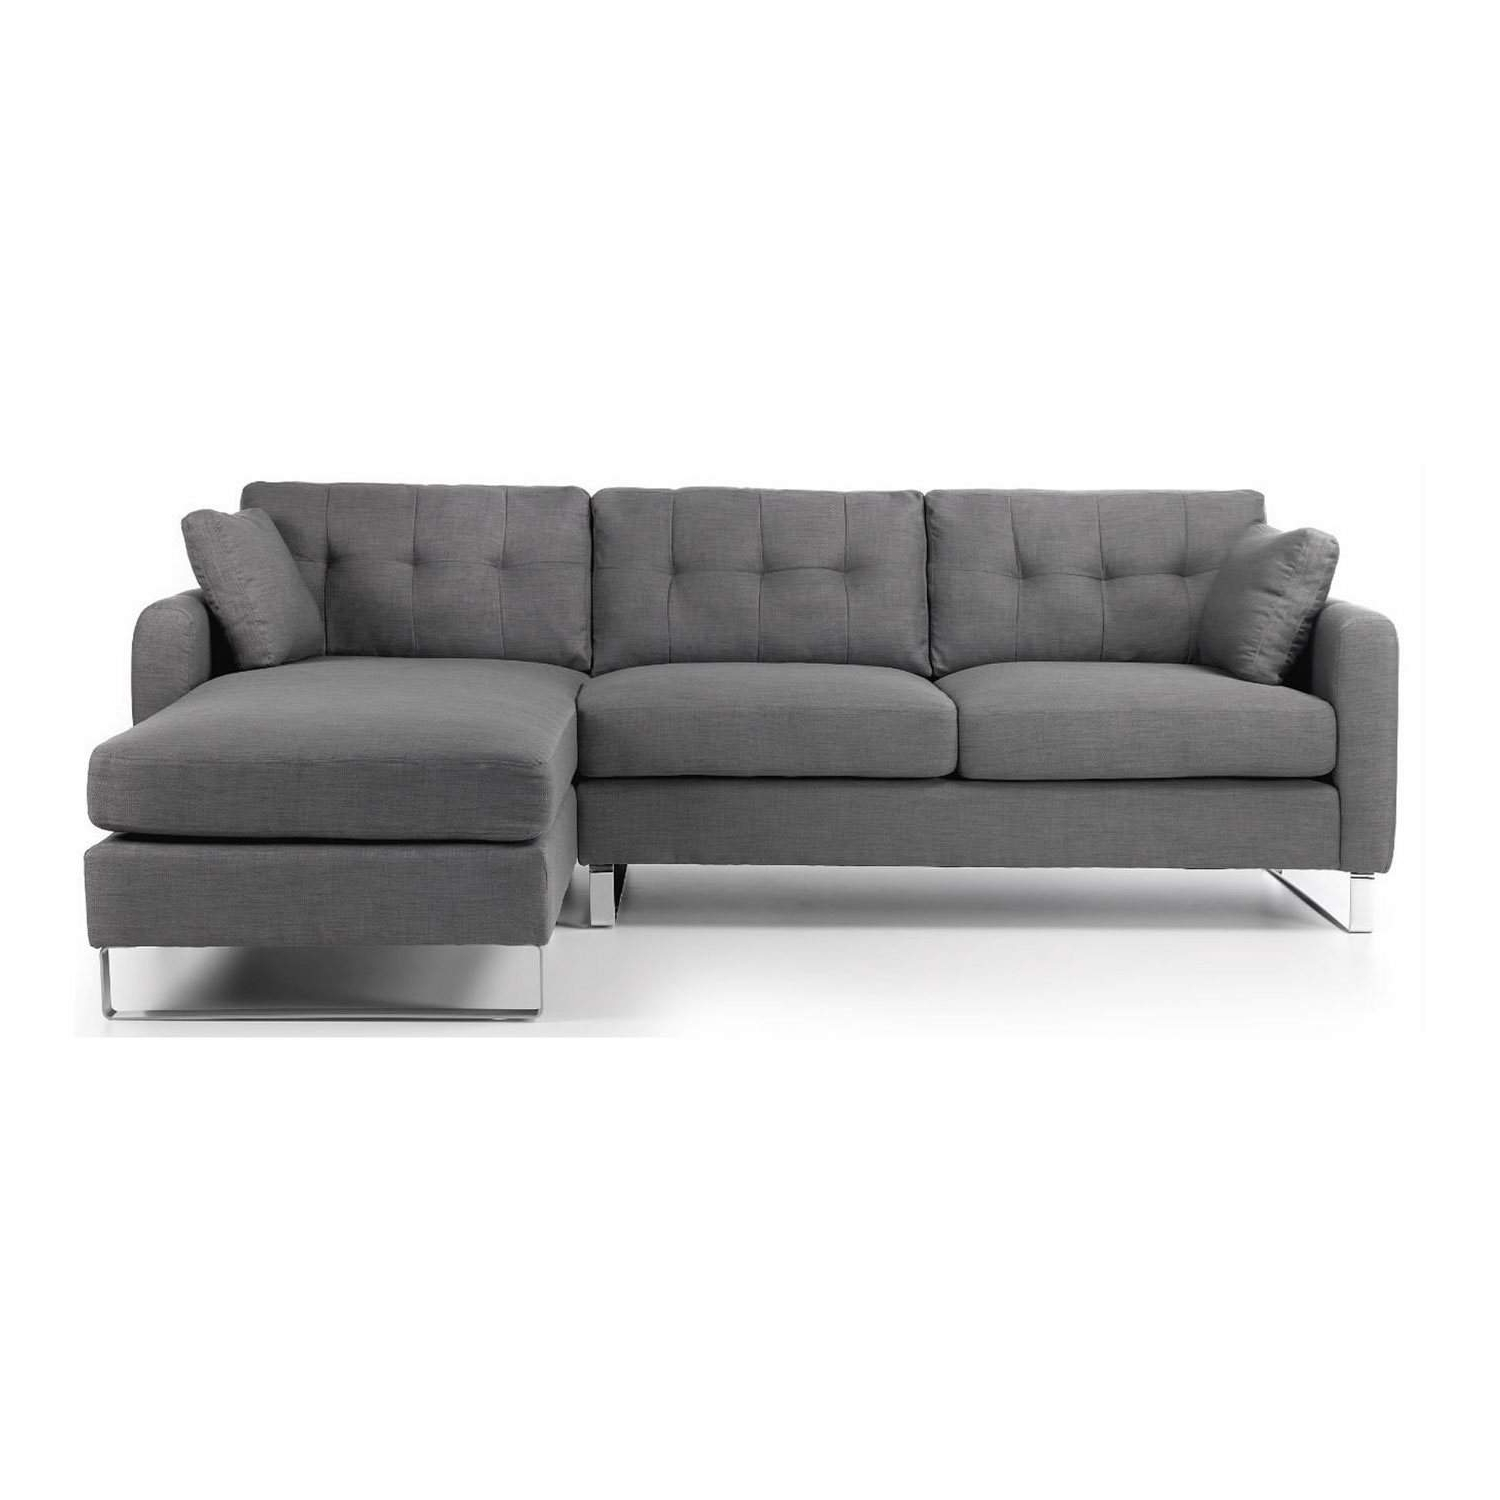 Gray Chaise Sofas With Current 37 Most Superb Grey Chaise Sofa Or Ekornes Stressless Plus Rustic (View 5 of 15)